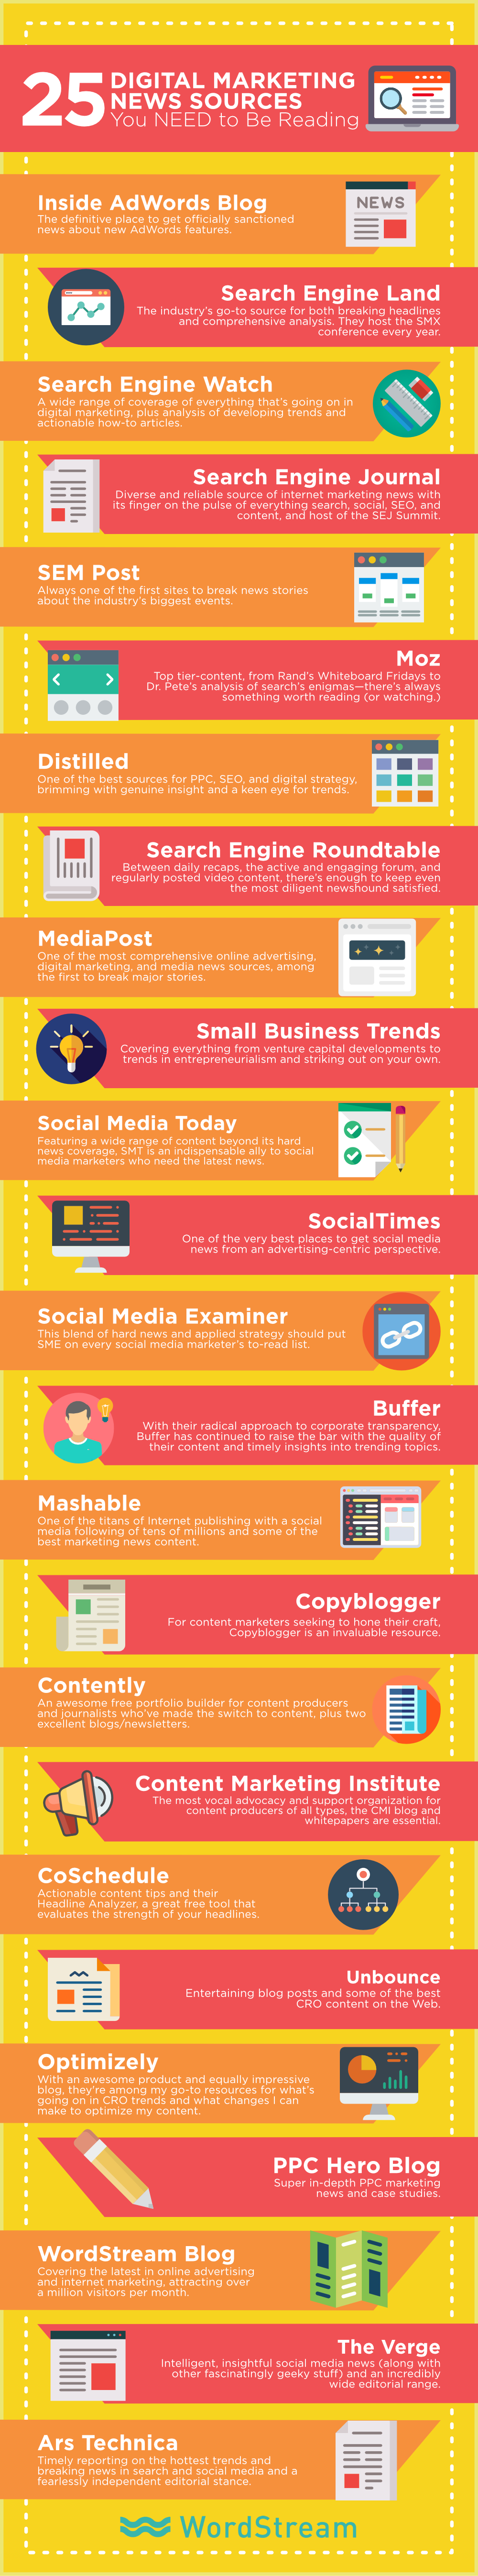 25 Digital Marketing News Sources You Need to Be Reading- #Infographic